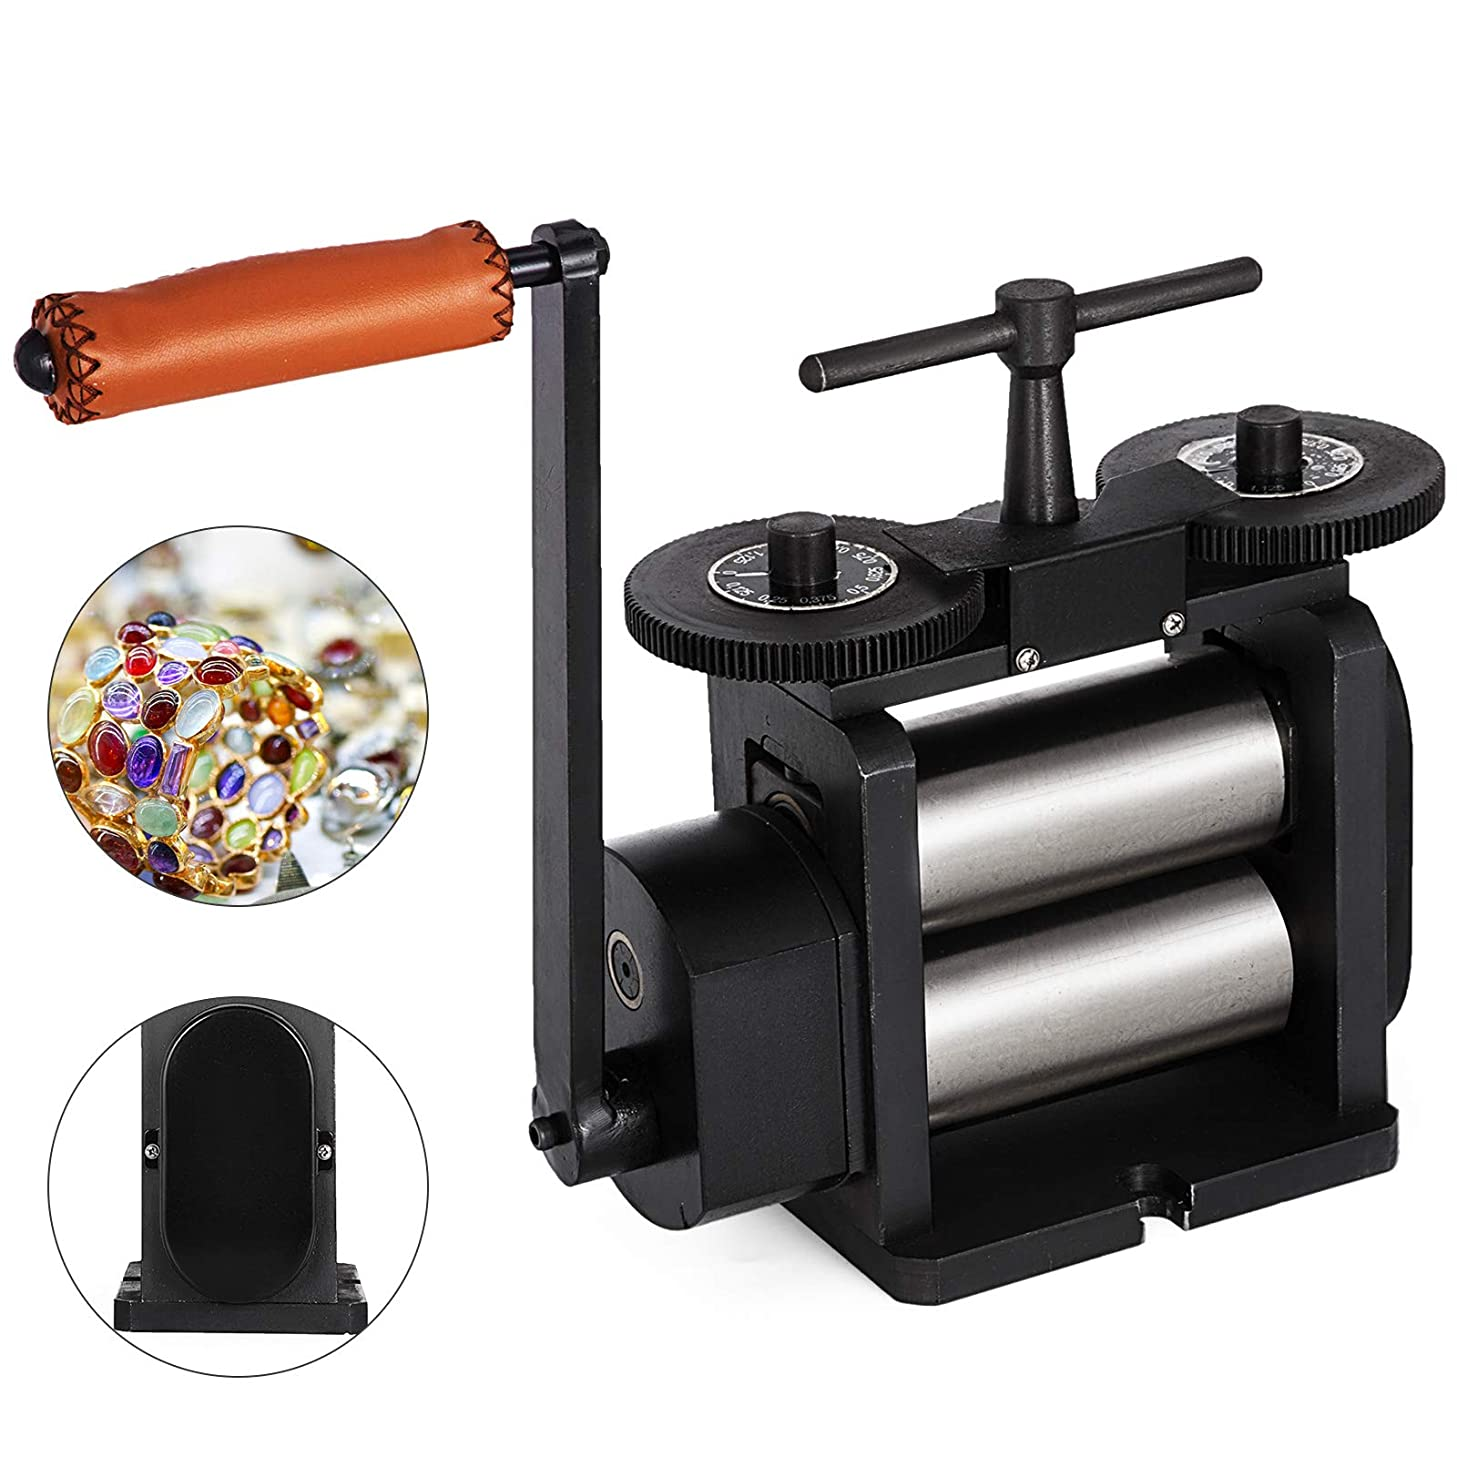 Mophorn Jewelry Rolling Mill Flat Rolling Mill 110mm Wide 55mm Diameter Rollers Manual Rolling Mill Machine Jewelry Marking Tools Designed for Jewelers and Crafts-People